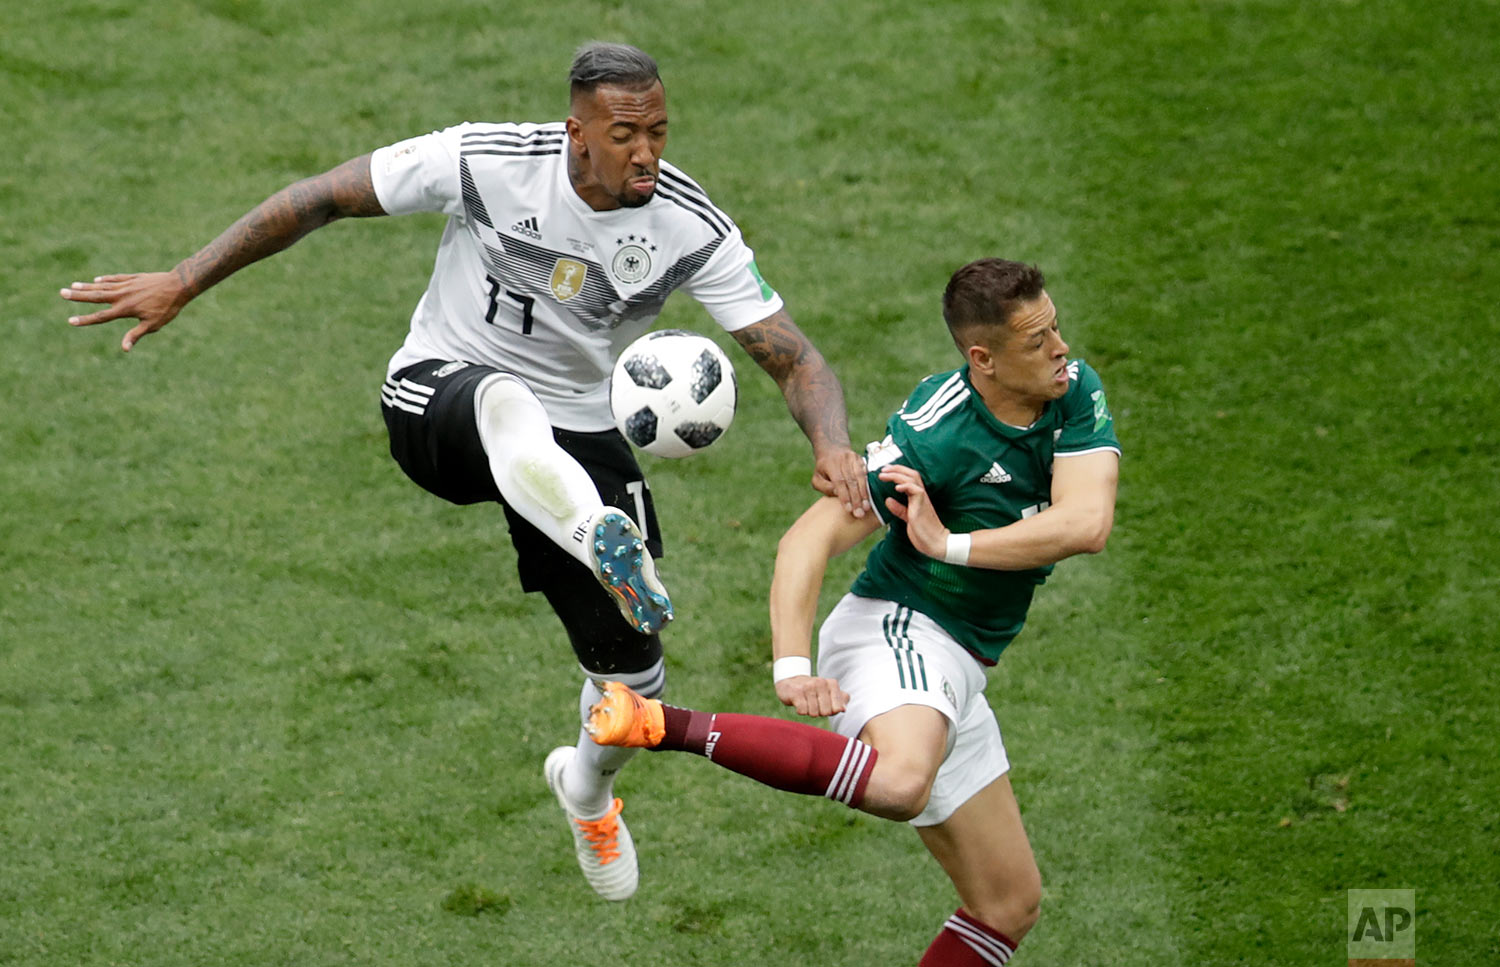 Germany's Jerome Boateng, left, and Mexico's Javier Hernandez challenge for the ball during the group F match between Germany and Mexico at the 2018 soccer World Cup in the Luzhniki Stadium in Moscow, Russia, Sunday, June 17, 2018. (AP Photo/Michael Probst)